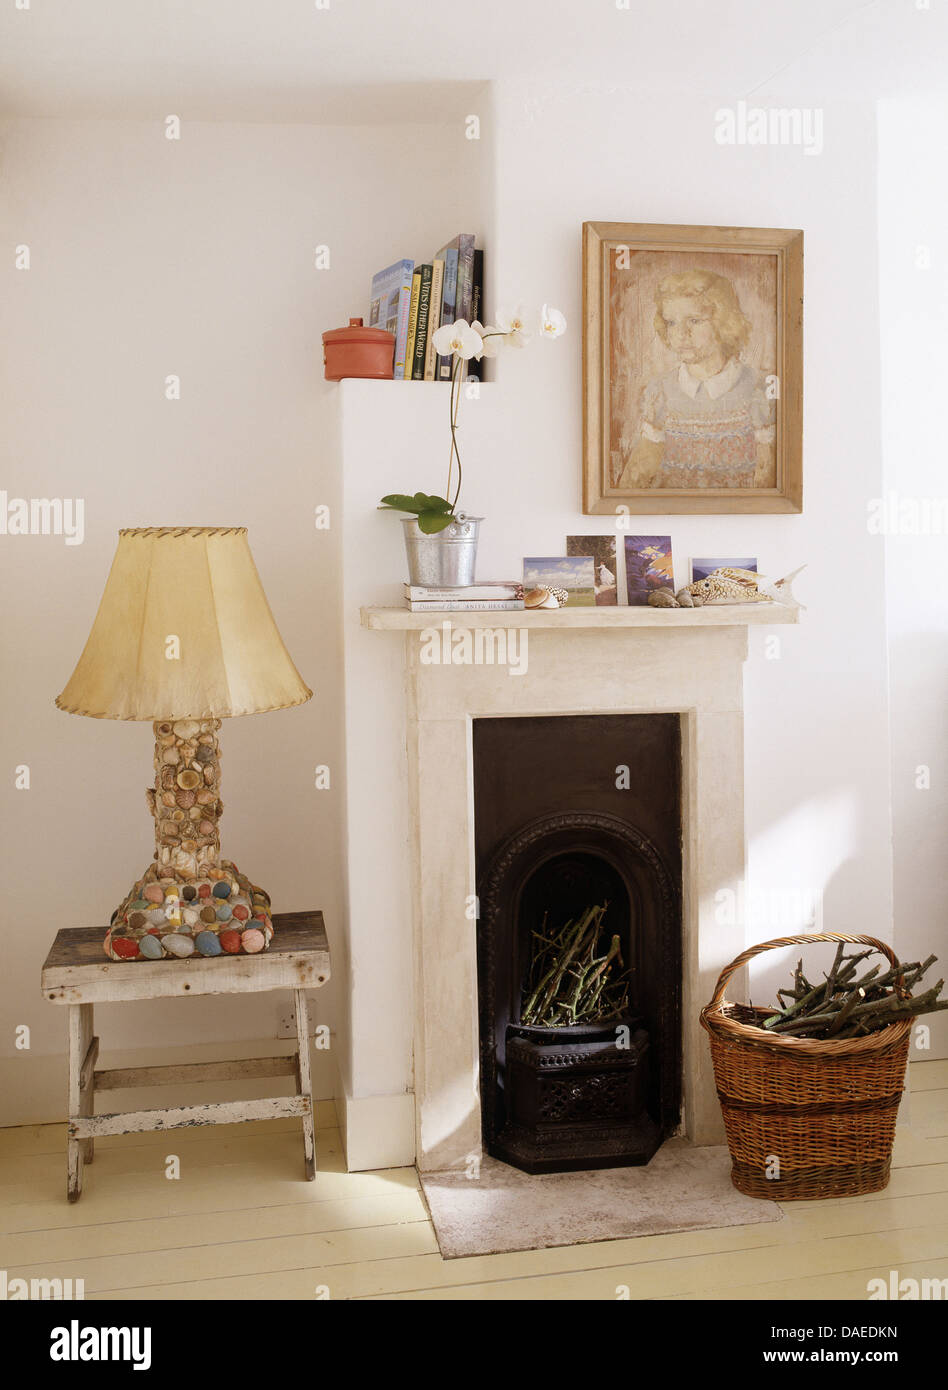 Pebble encrusted lamp on painted stool beside small fireplace in ...